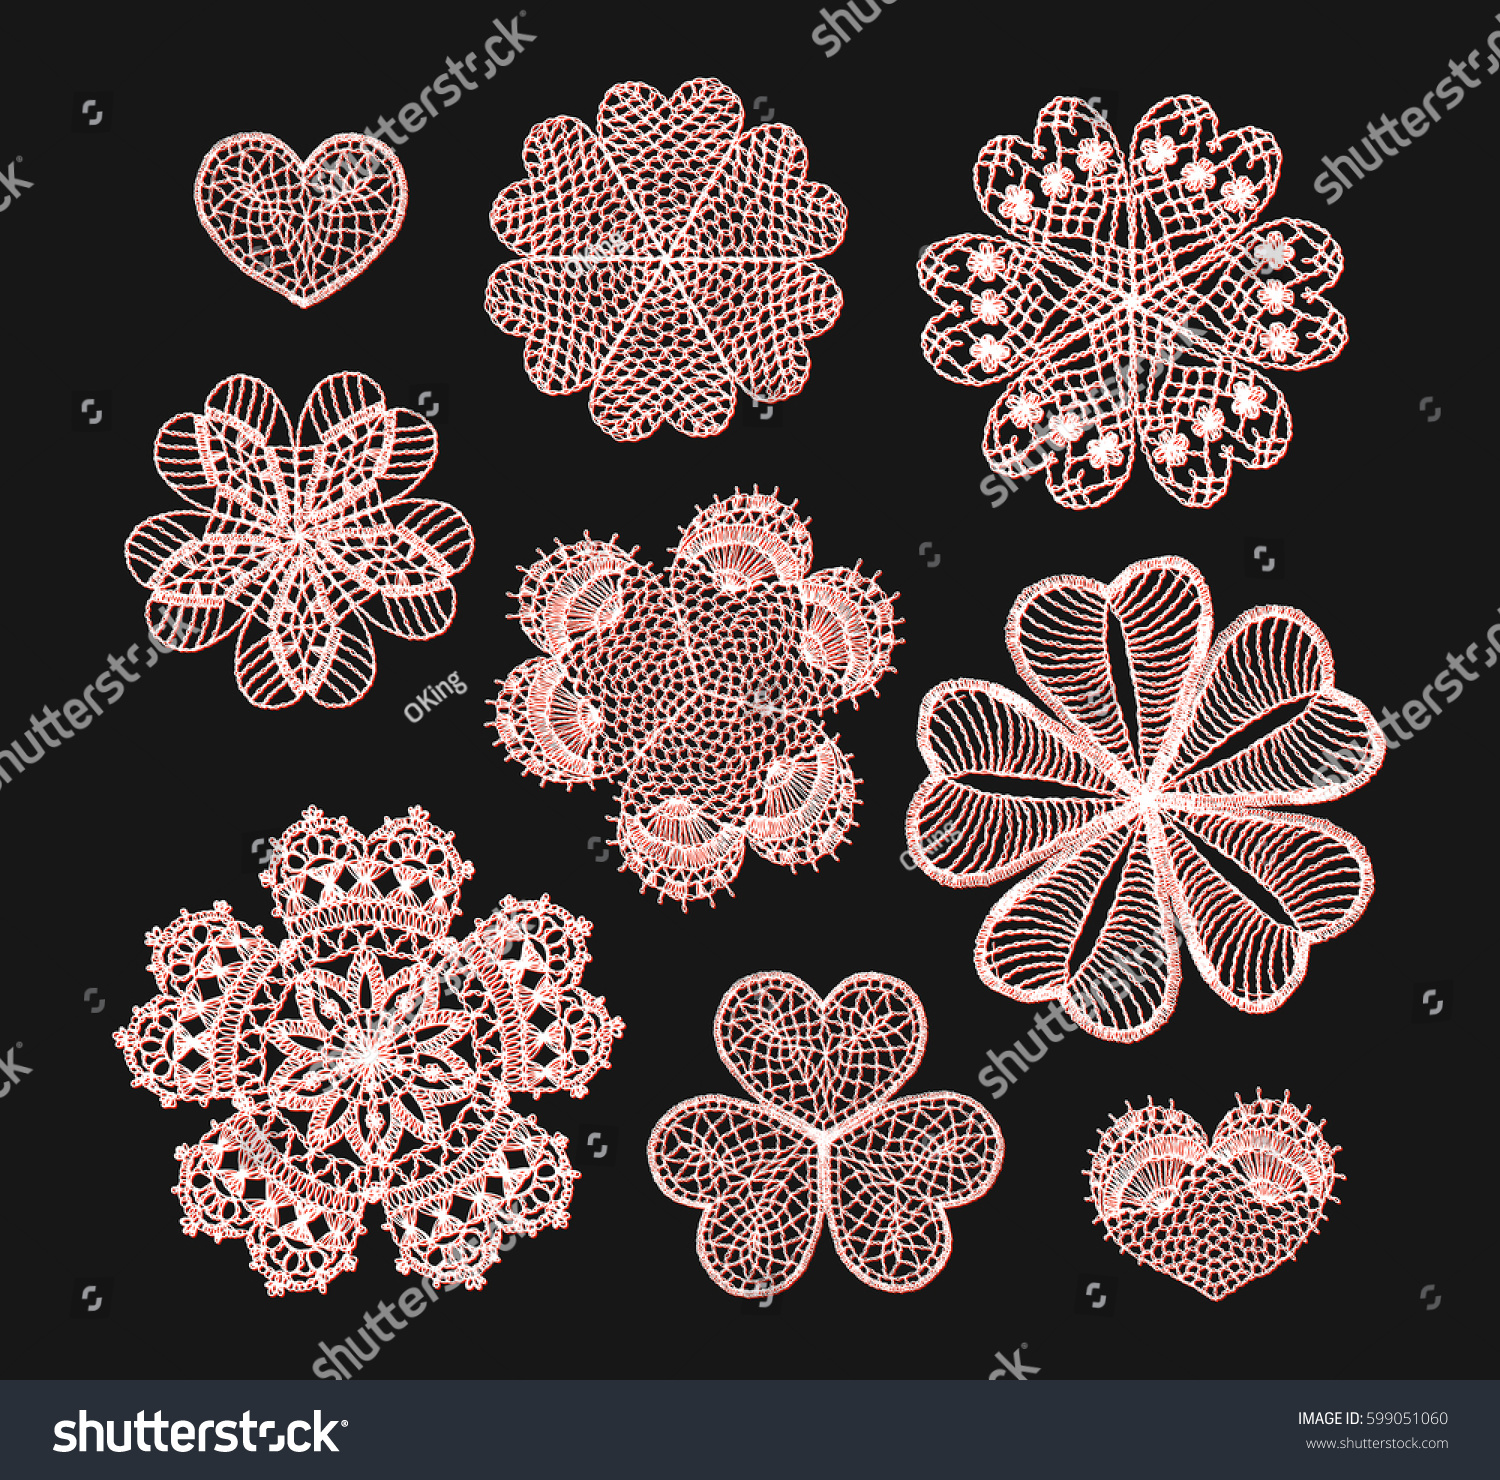 Knitted Flower Mandala Crochet Doily Black Stock Vector 599051060 ...